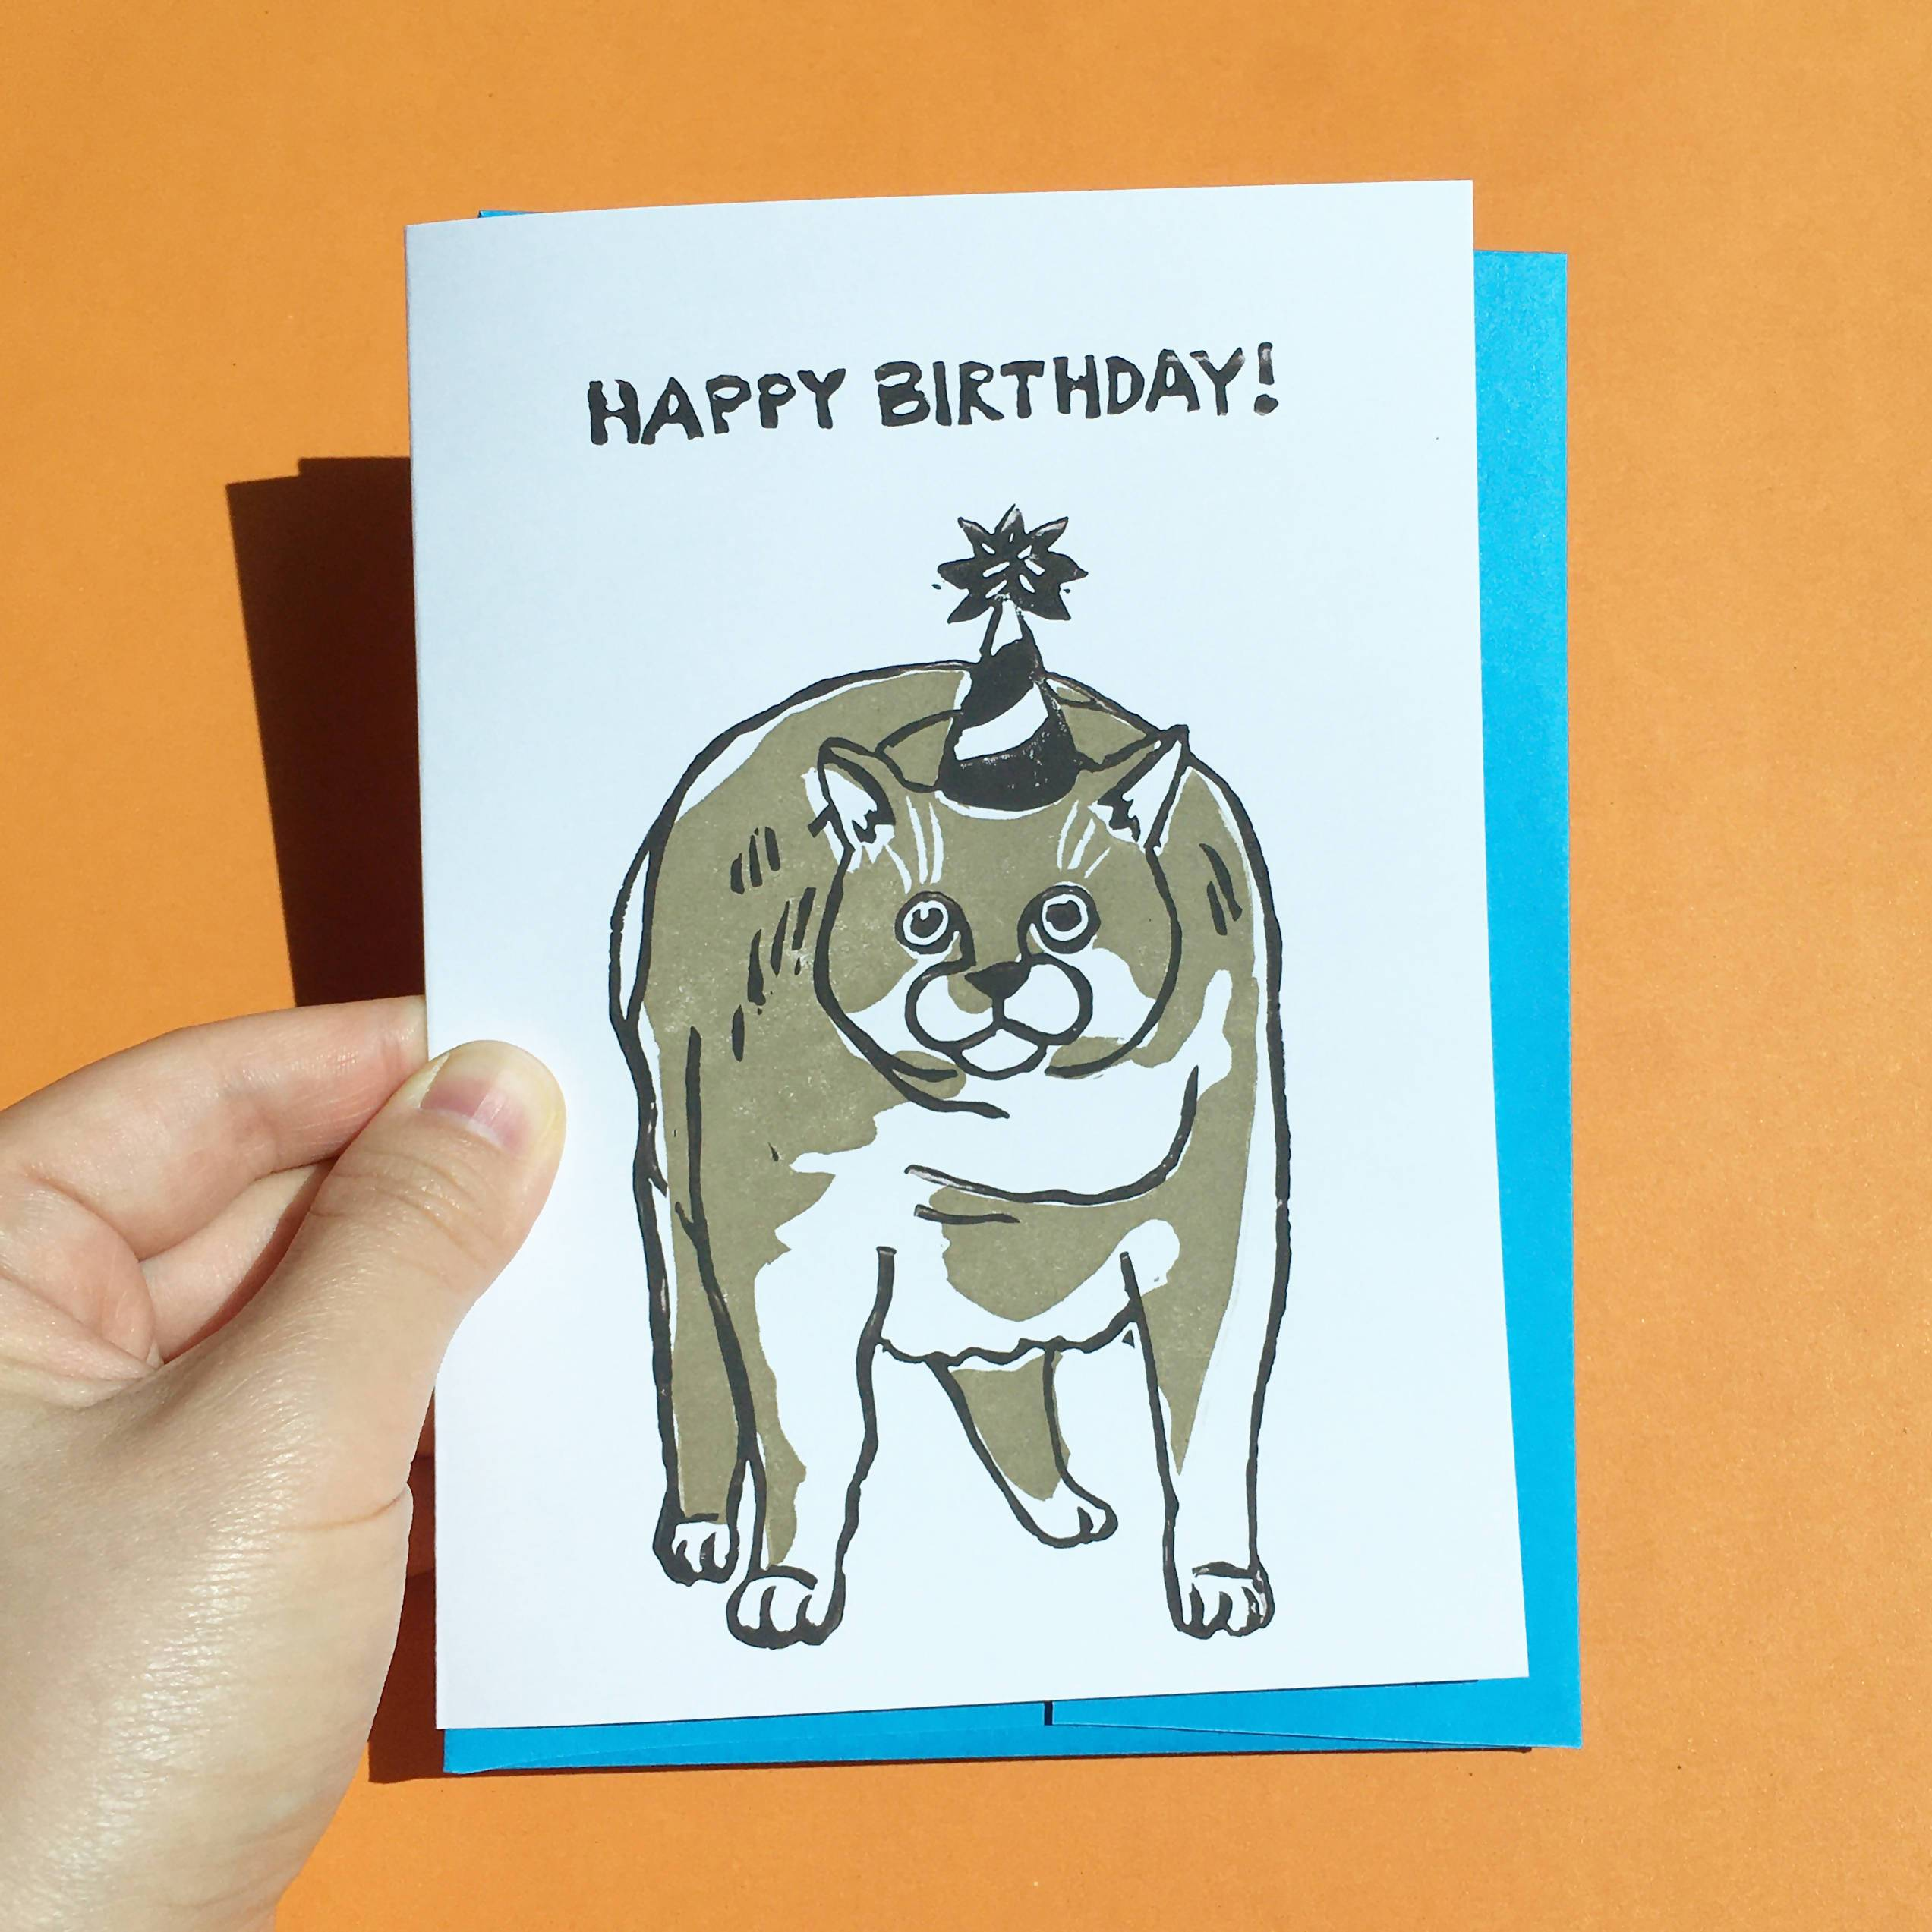 Happy Birthday Gray Chonky Cat - Hand-Printed Cat Greeting Card - Birthday Cards - Ping Hatta. Studio - Naiise